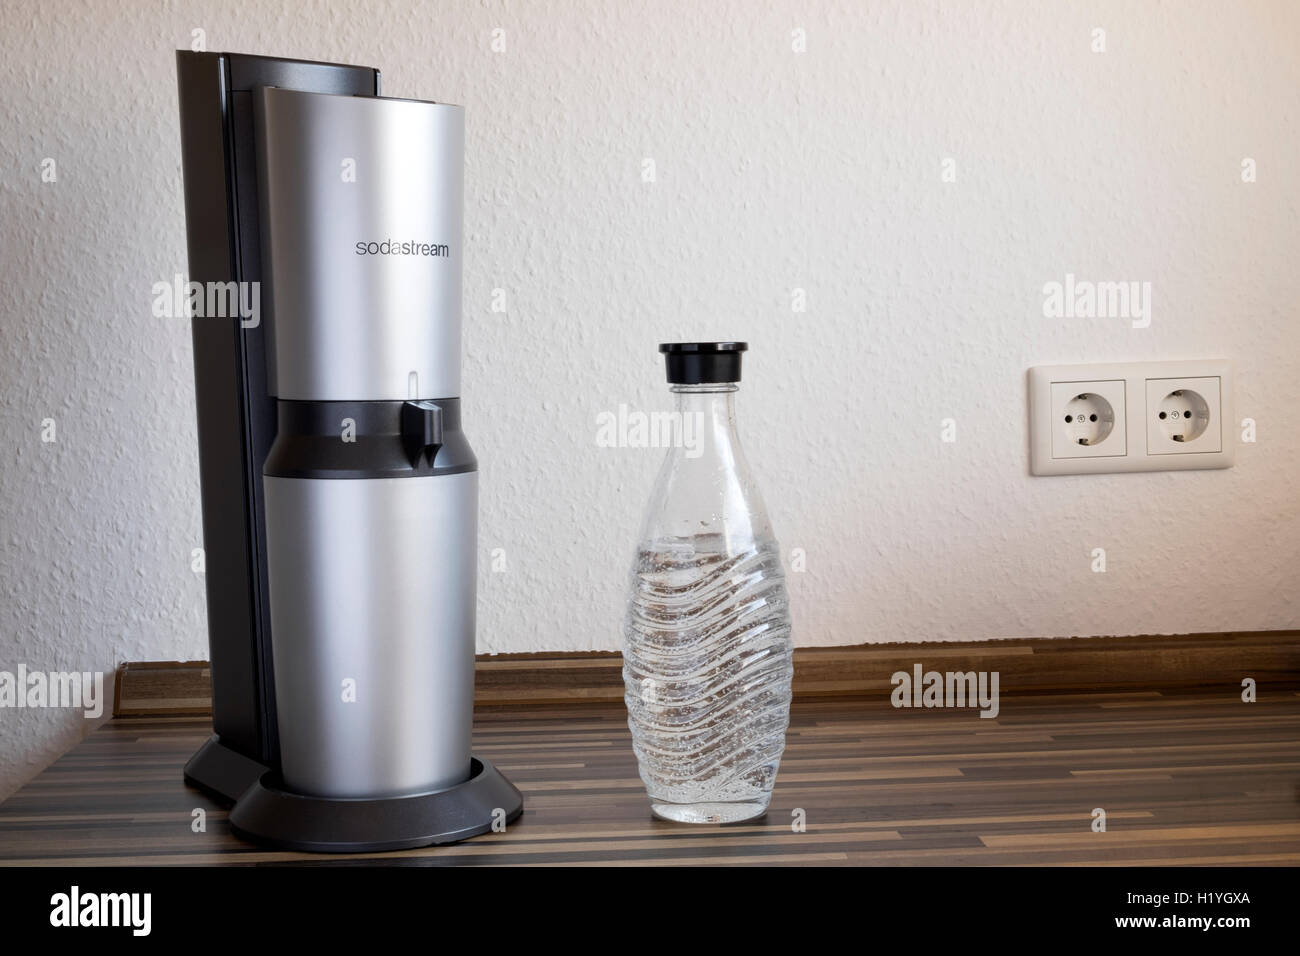 Sodastream & bottle with carbonated water - Stock Image